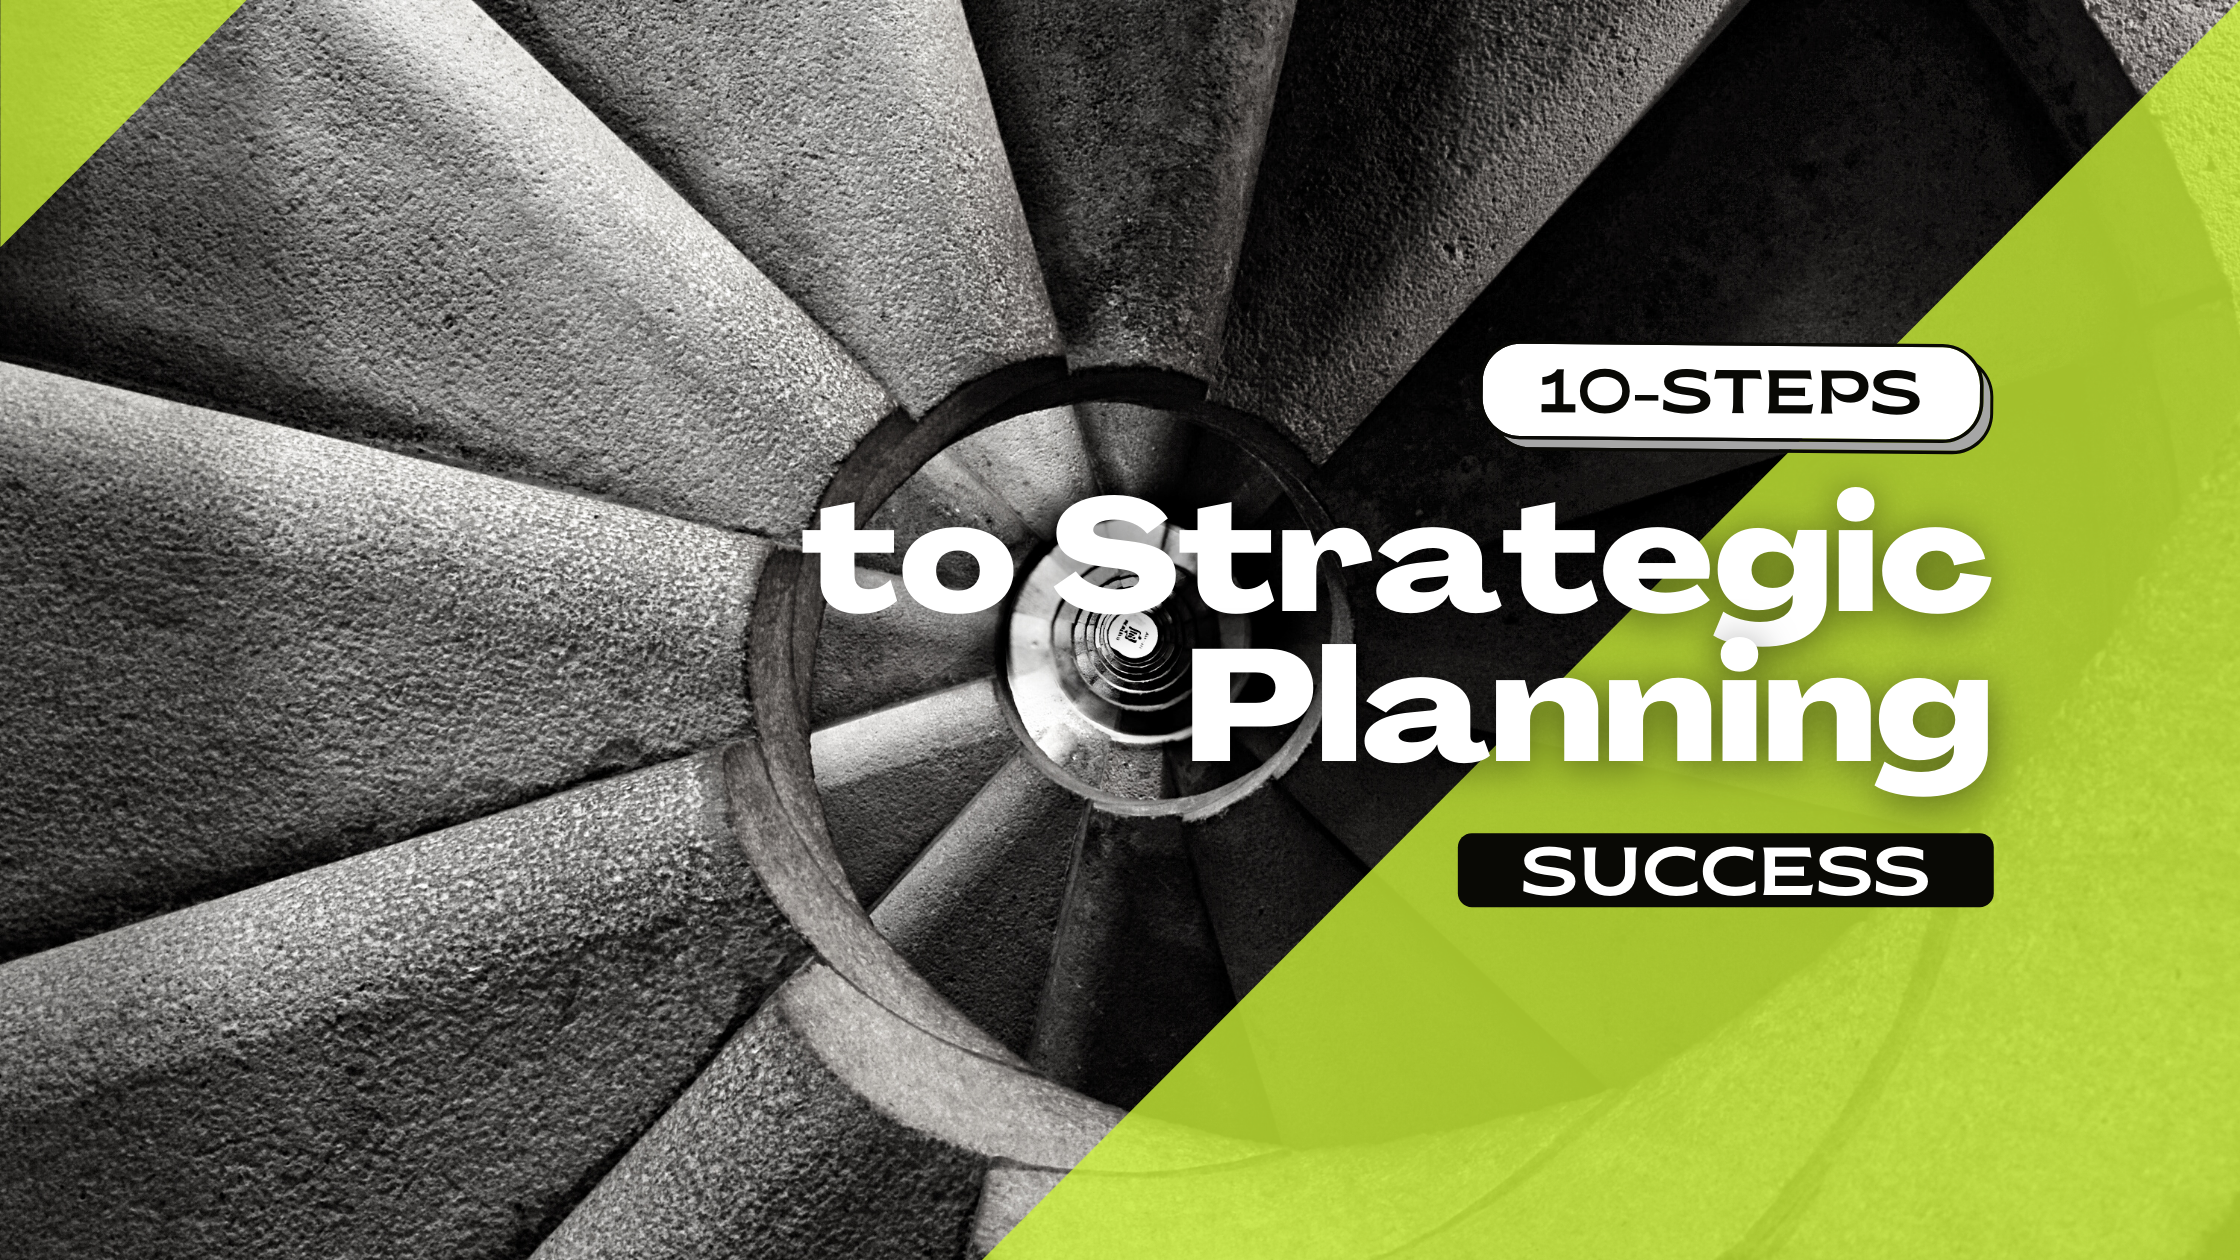 10-steps to strategic planning success.